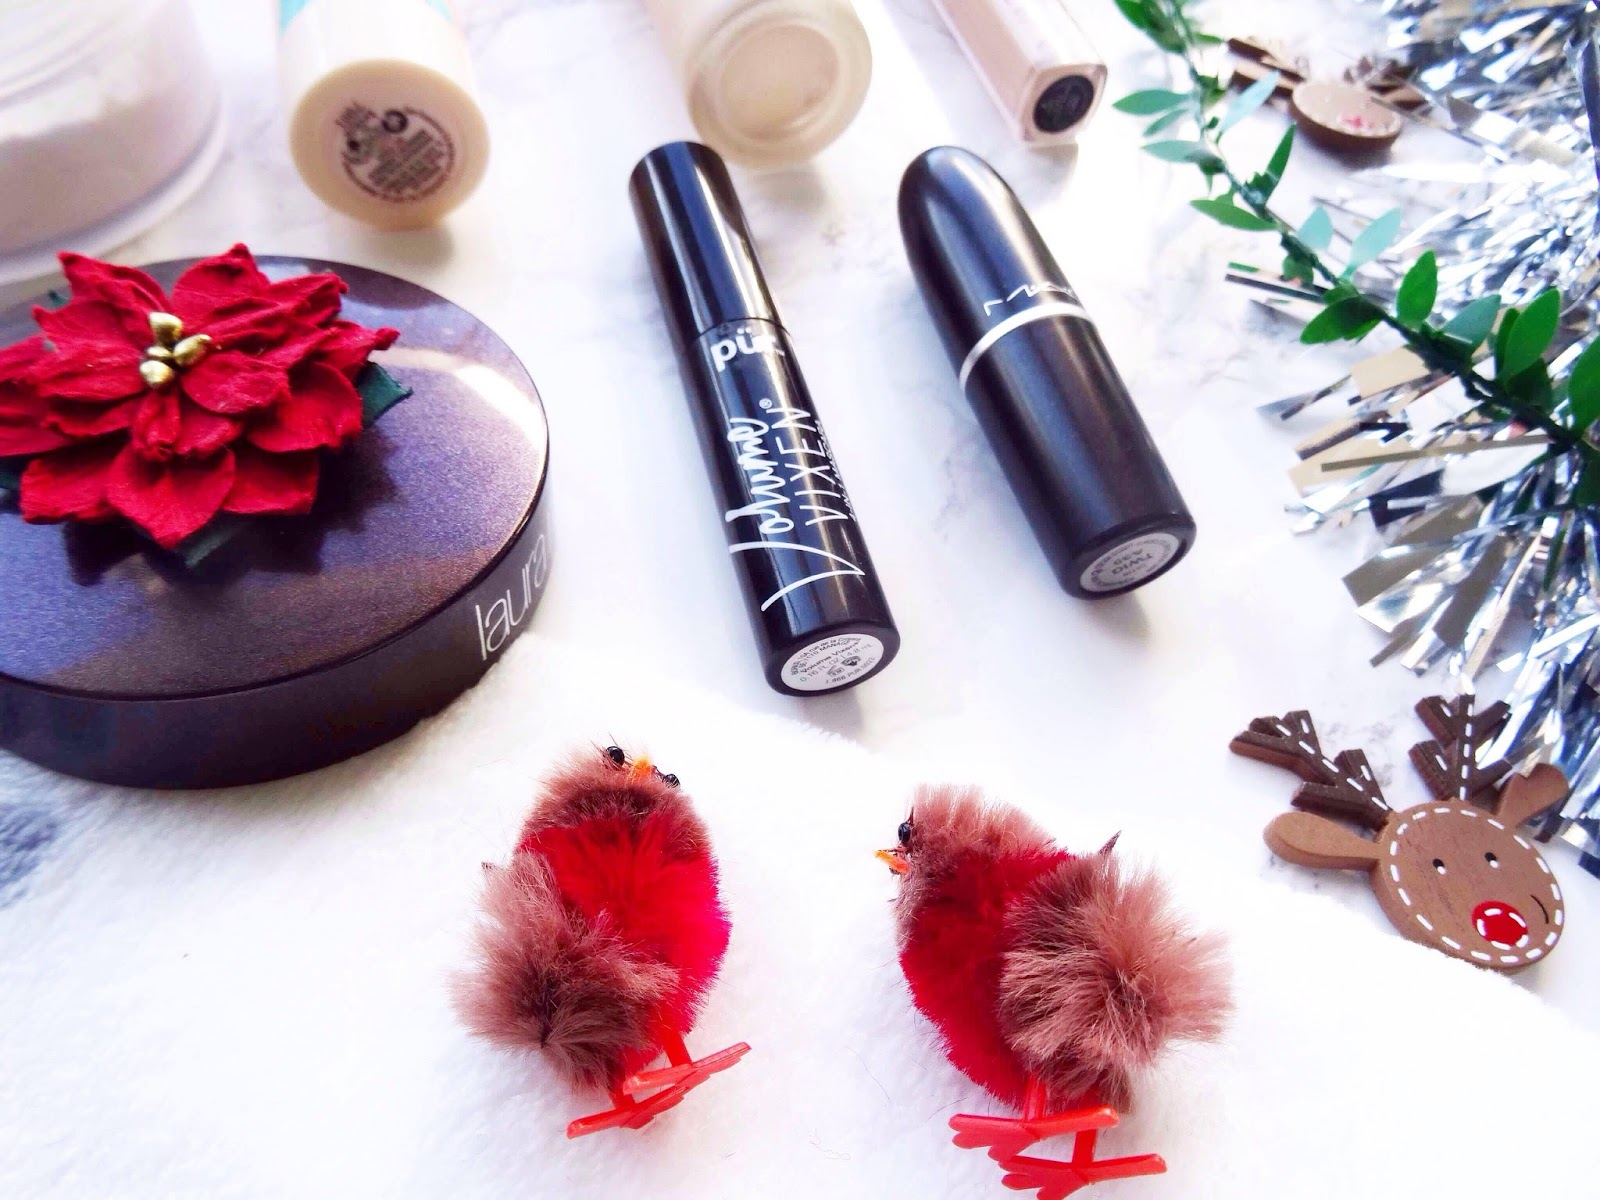 Two Christmas Robins infront of Makeup Products